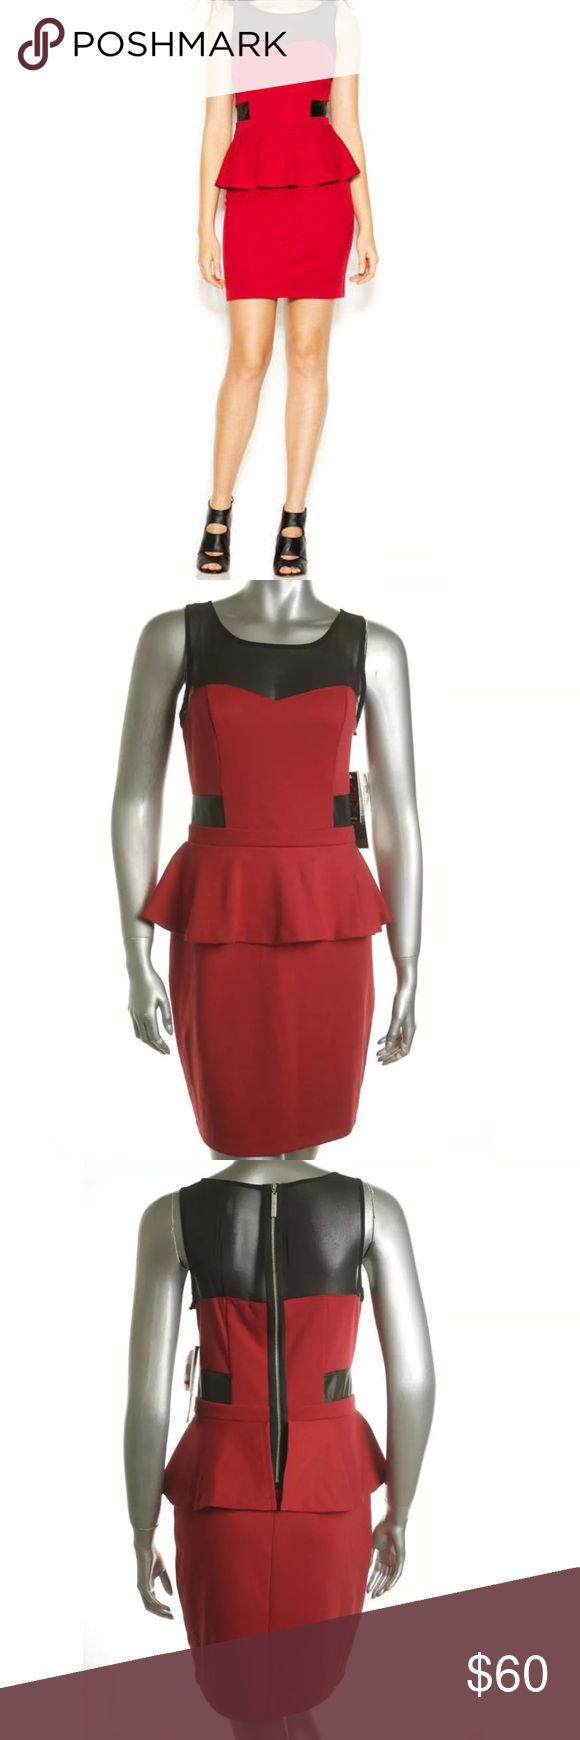 Kensie Peplum Dress Brand - Kensie Color - Red & Black Peplum Dress Size - XS Sleeveless  Material - Polyester  New with Tags Accepts Offers Kensie Dresses